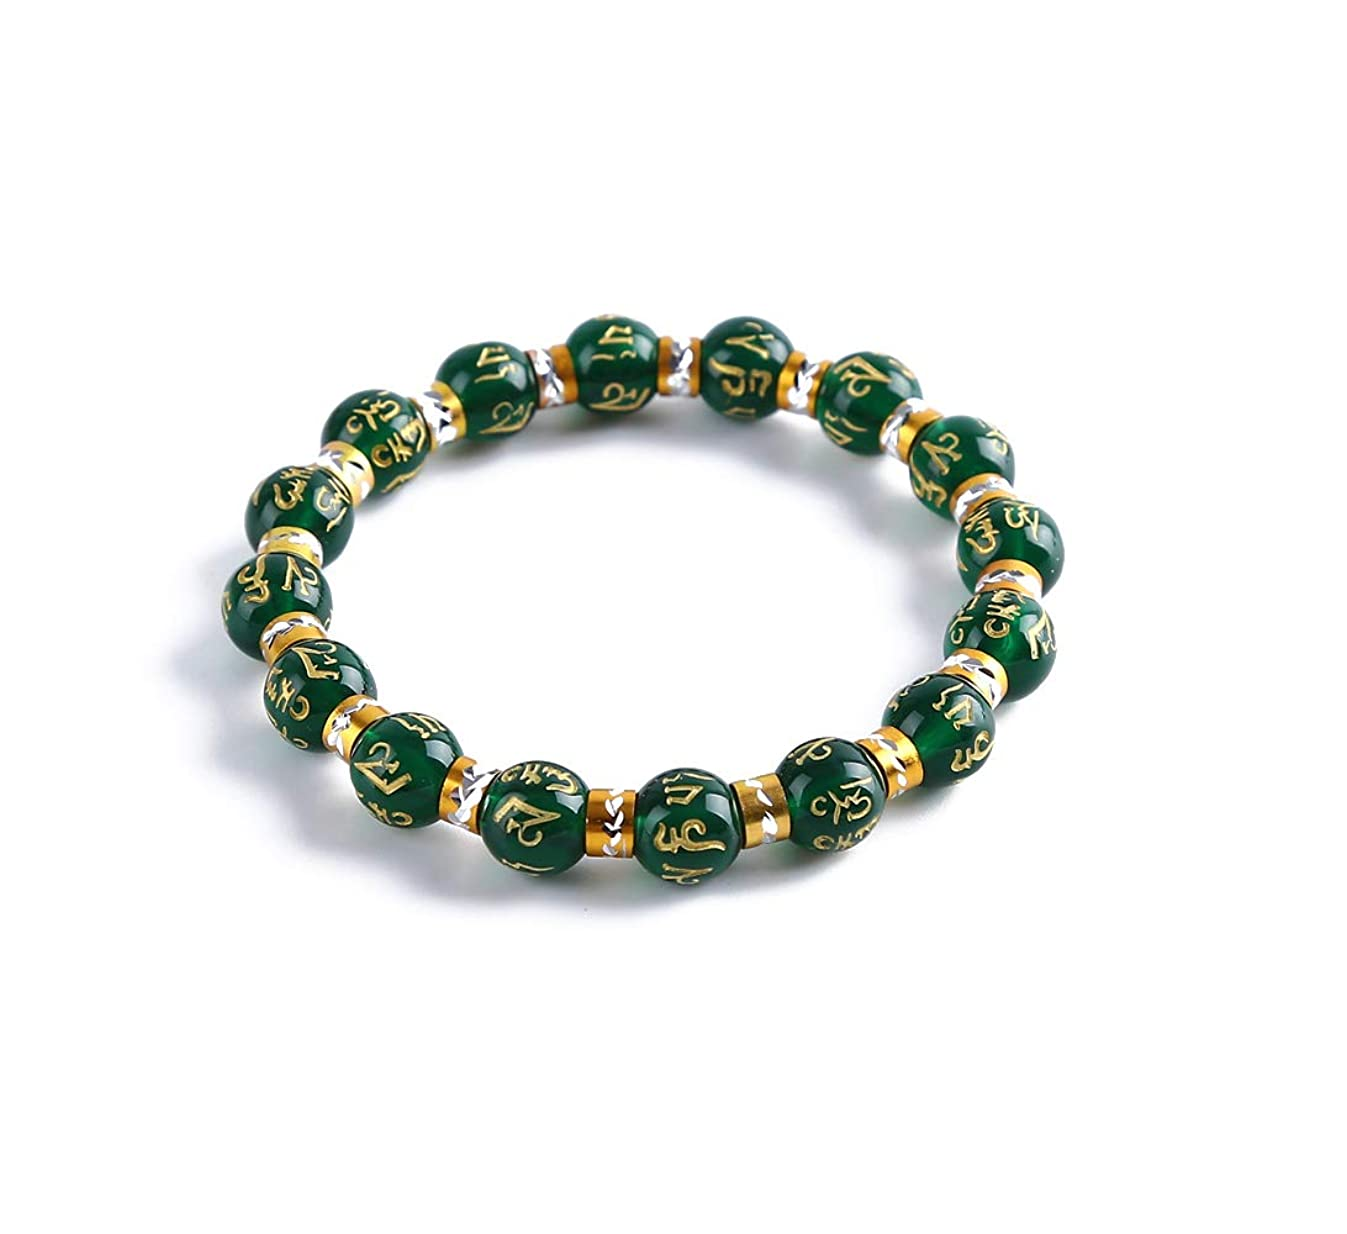 Feng Shui Chrysoprase inscribed in Sanskrit Wealth Porsperity 10mm Bracelet, Attract Wealth and Good Luck, Deluxe Gift Box Included